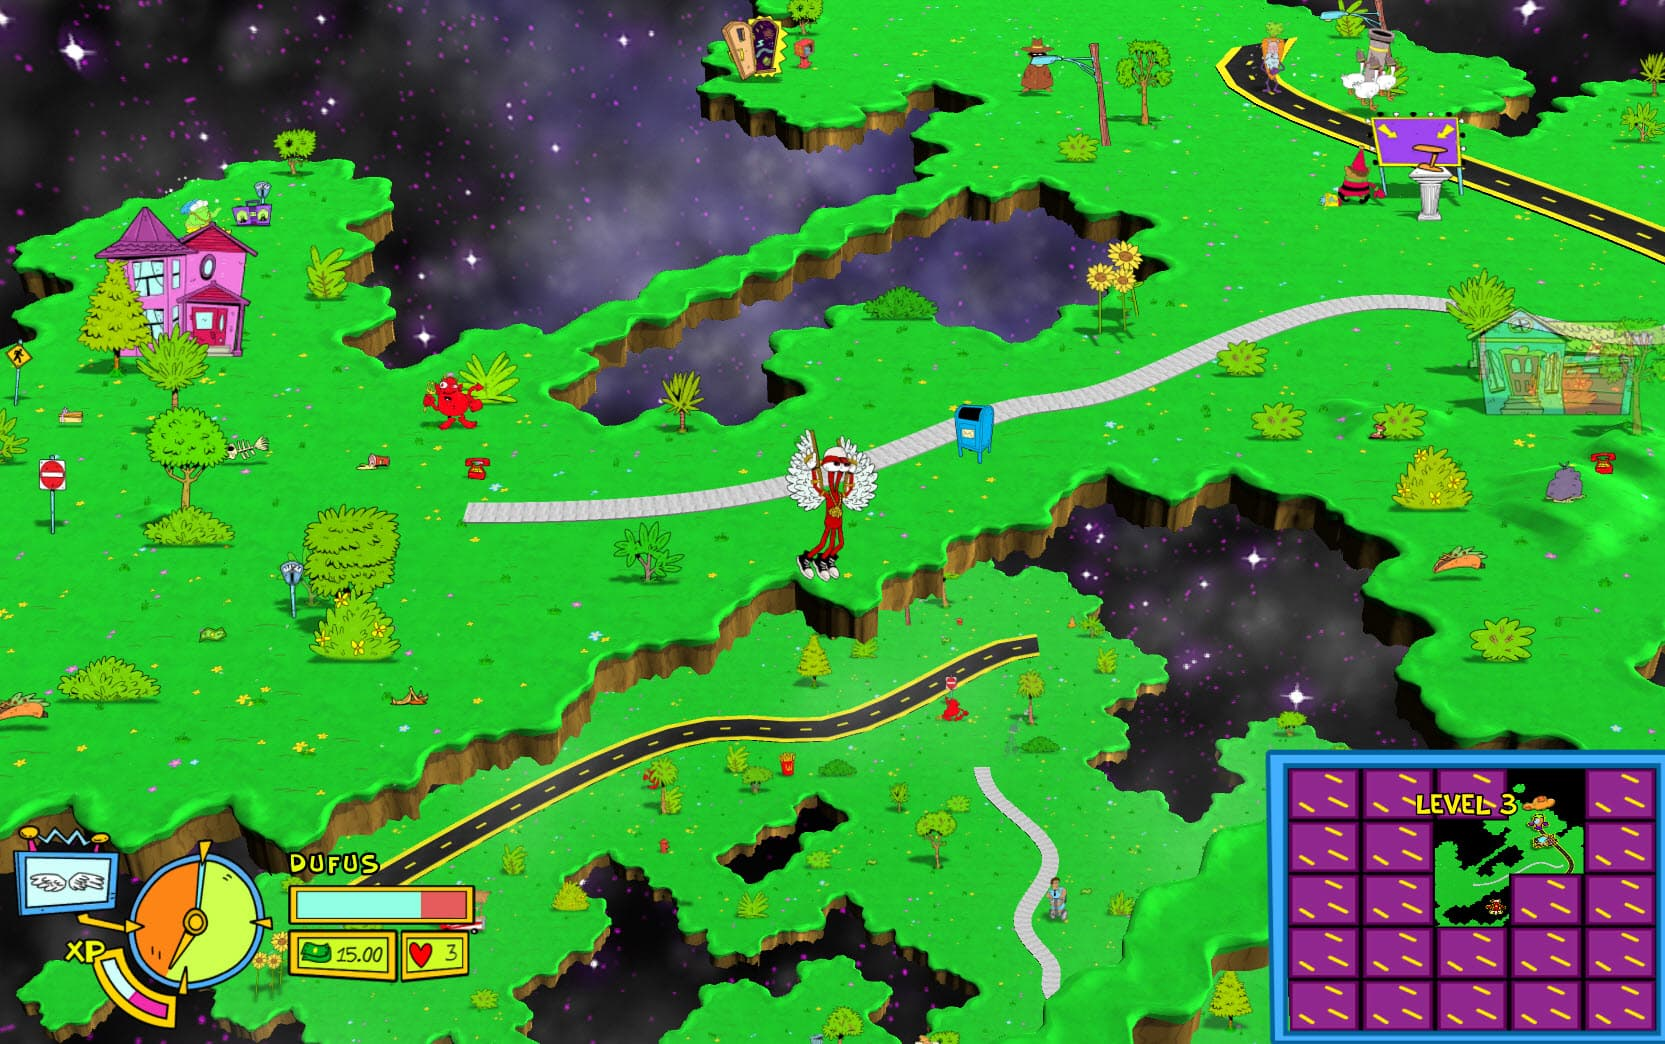 Xbox One ToeJam & Earl: Back in the Groove